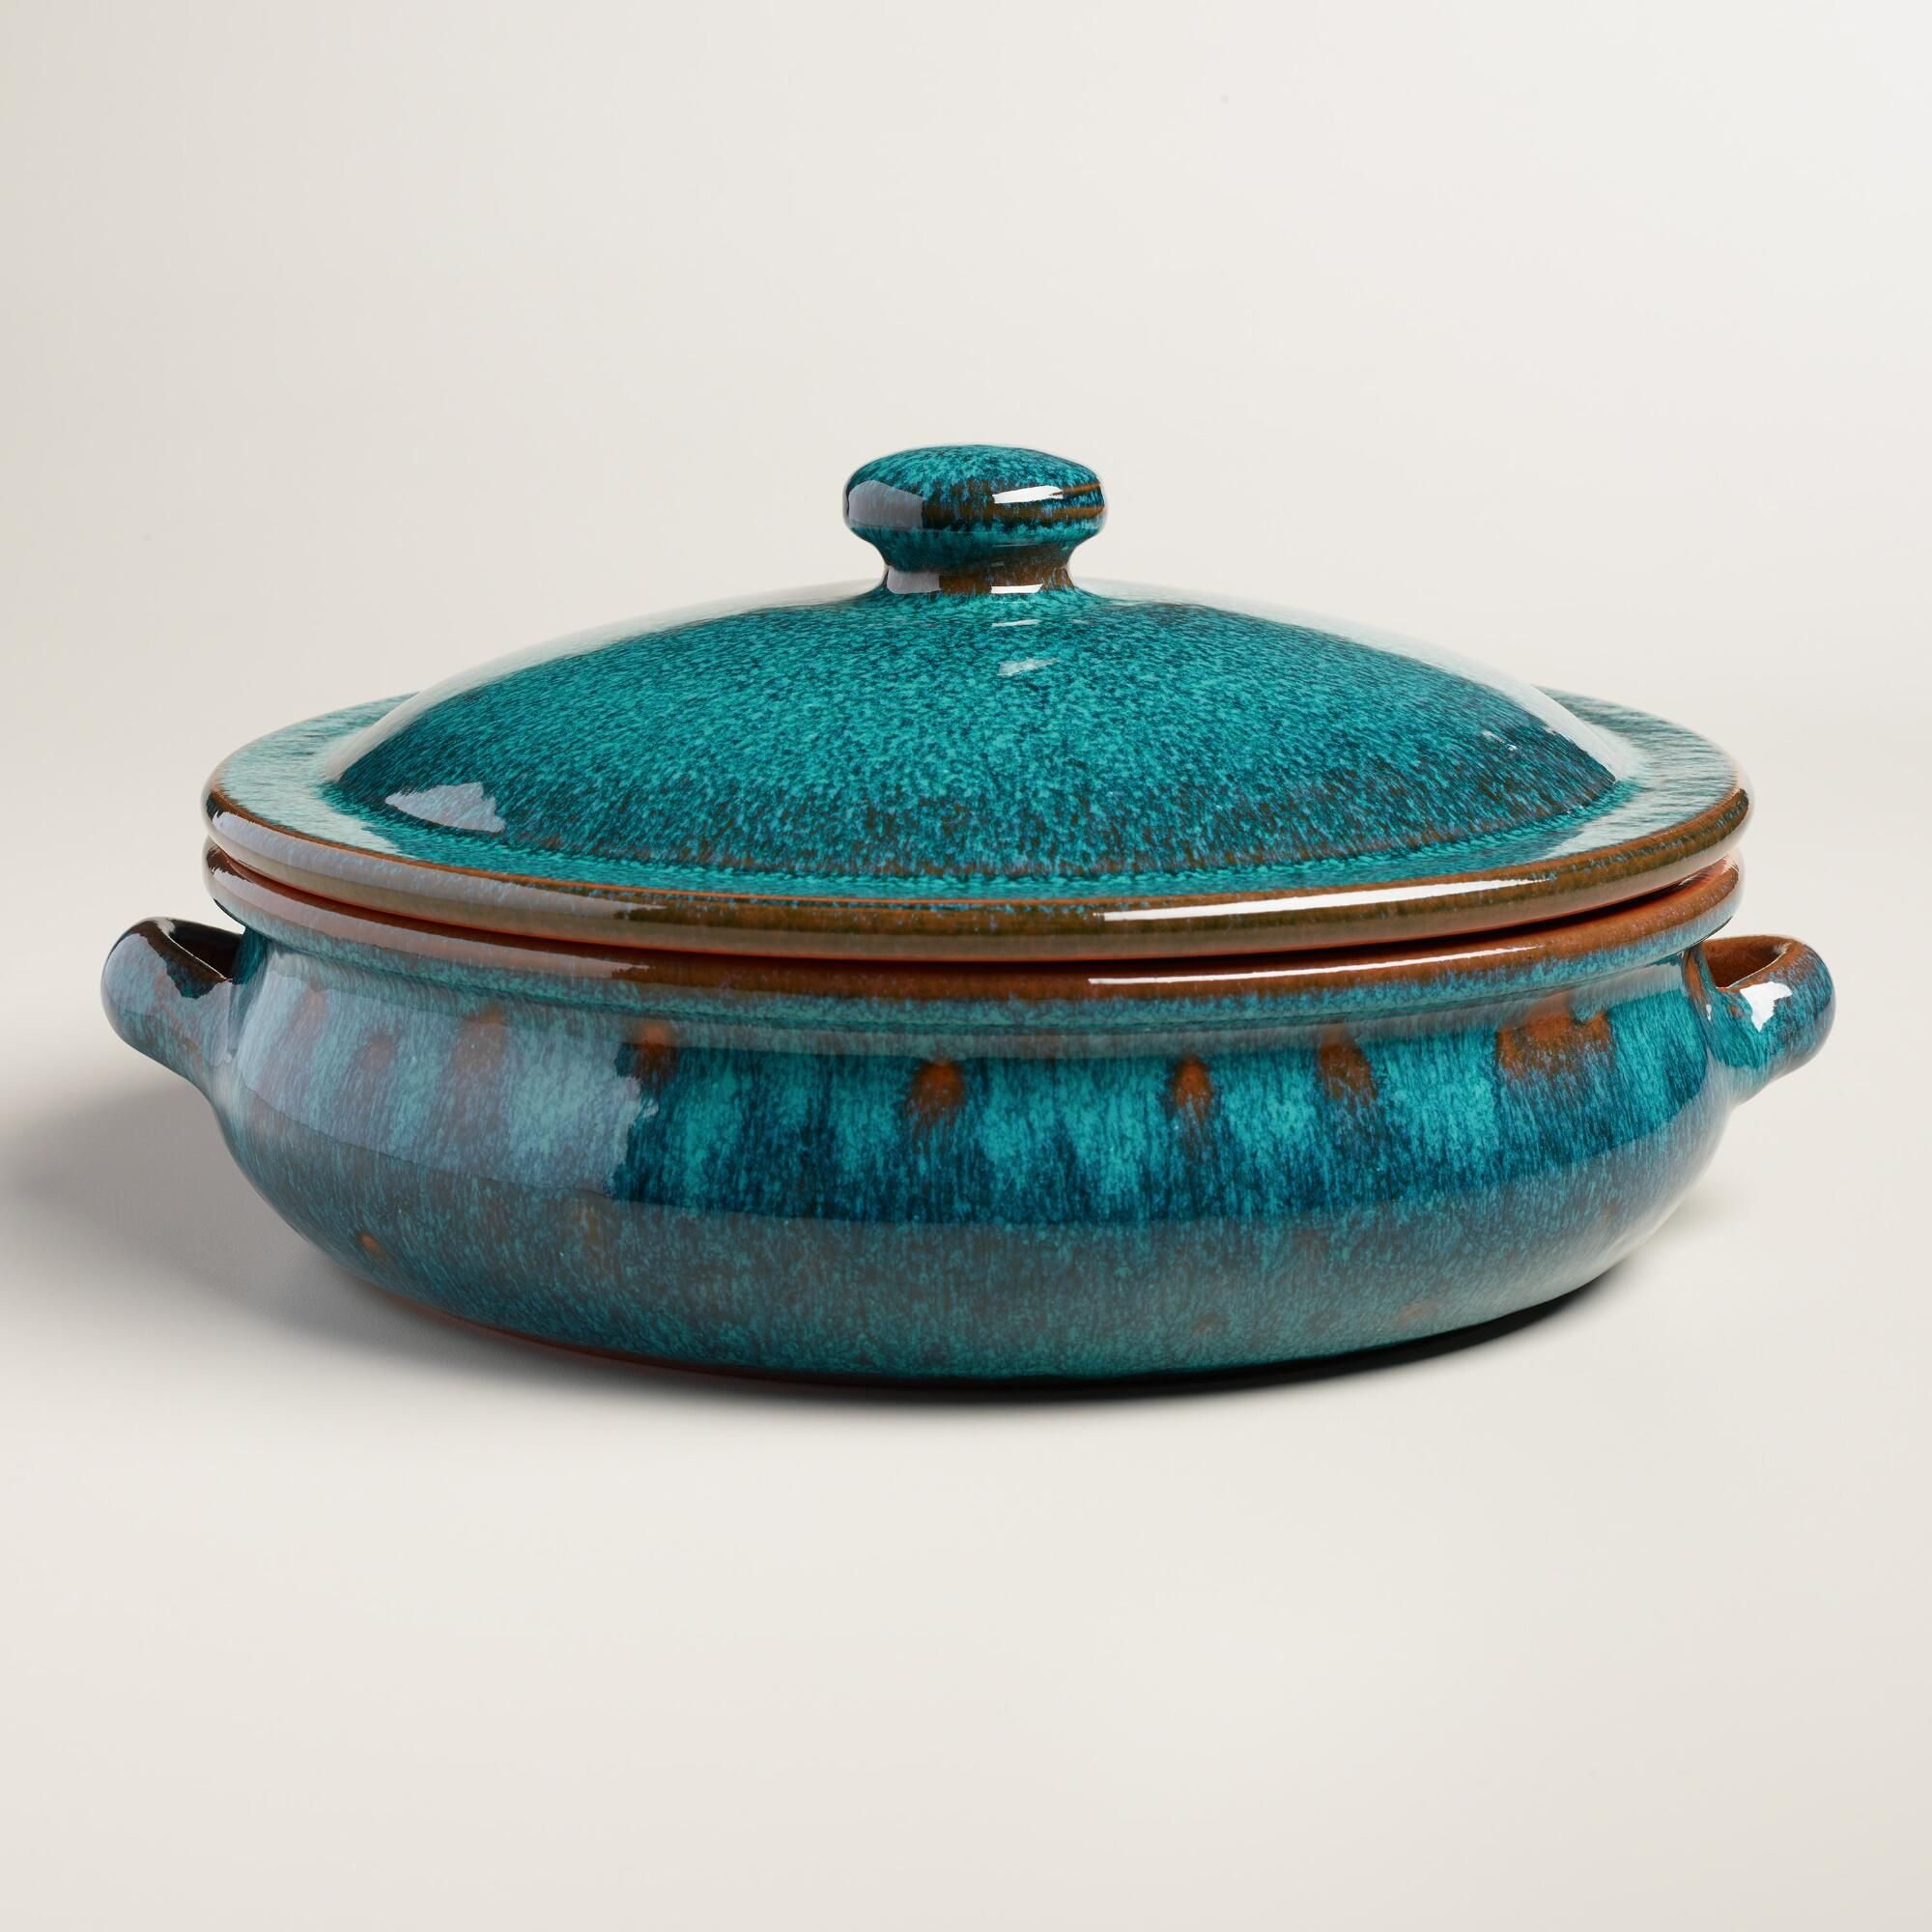 Large Peacock Reactive Glaze Belly Shaped Baker With Lid Ceramic Dishes Ceramic Baking Dish Ceramic Pottery